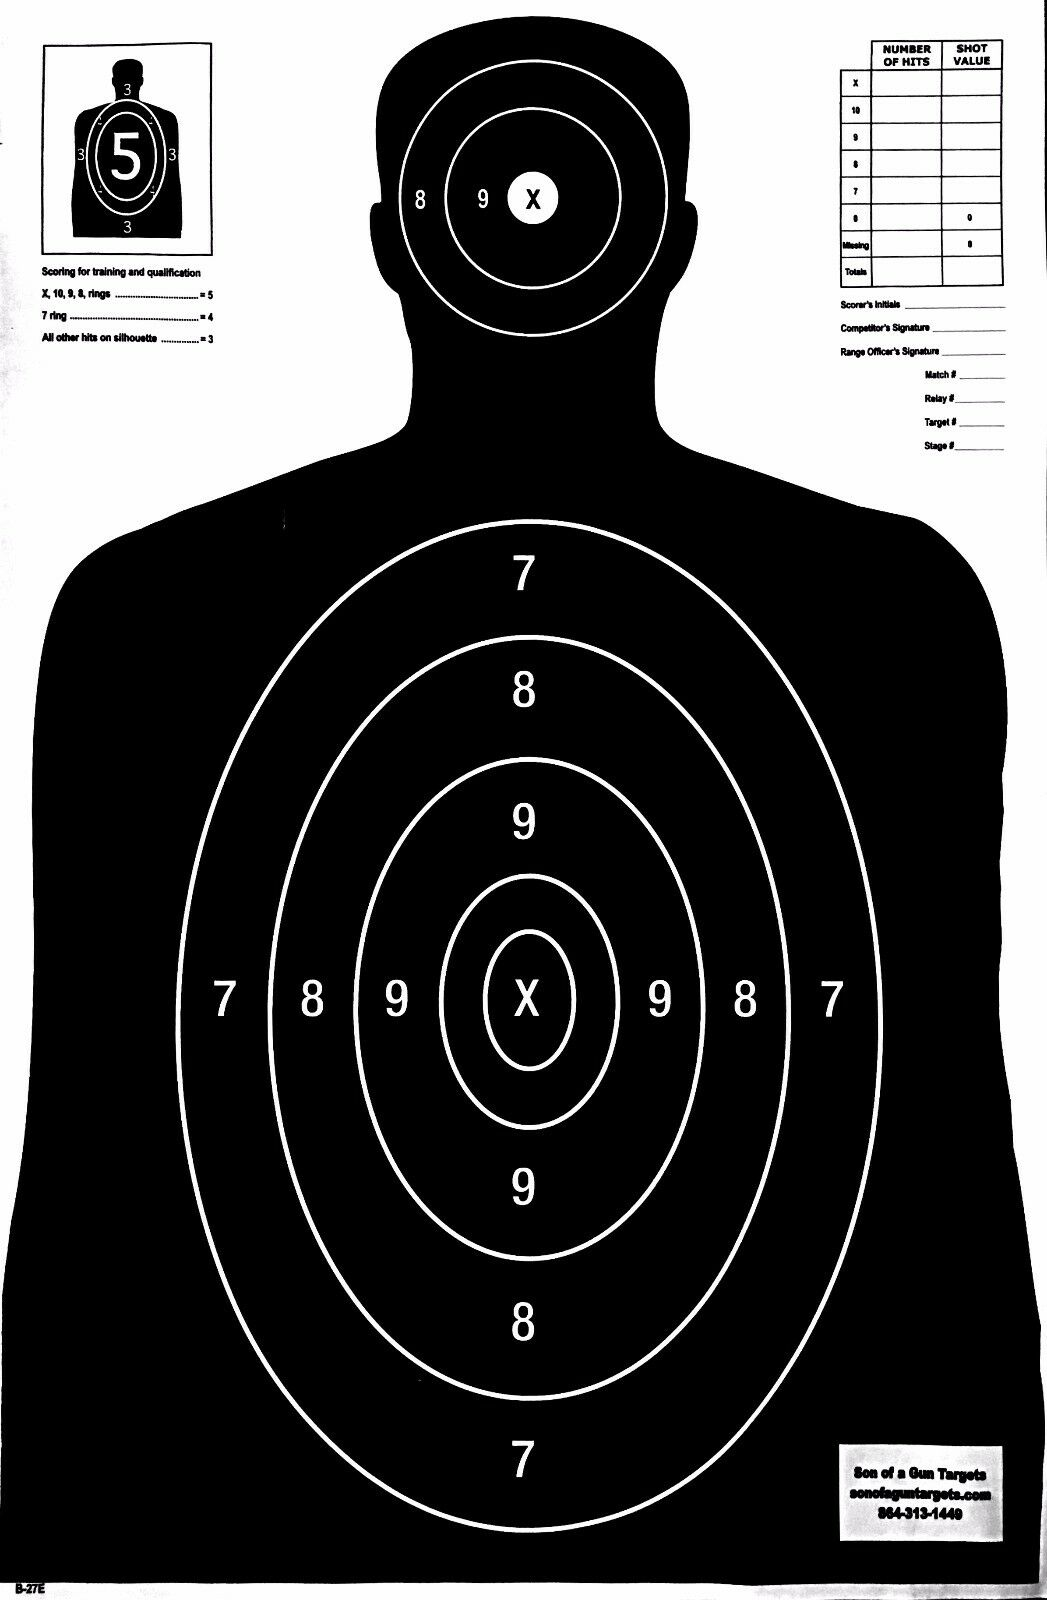 paper silhouette targets for sale New 1/4 thick soda bottles just added new product, excited to offer a cheaper target for those.